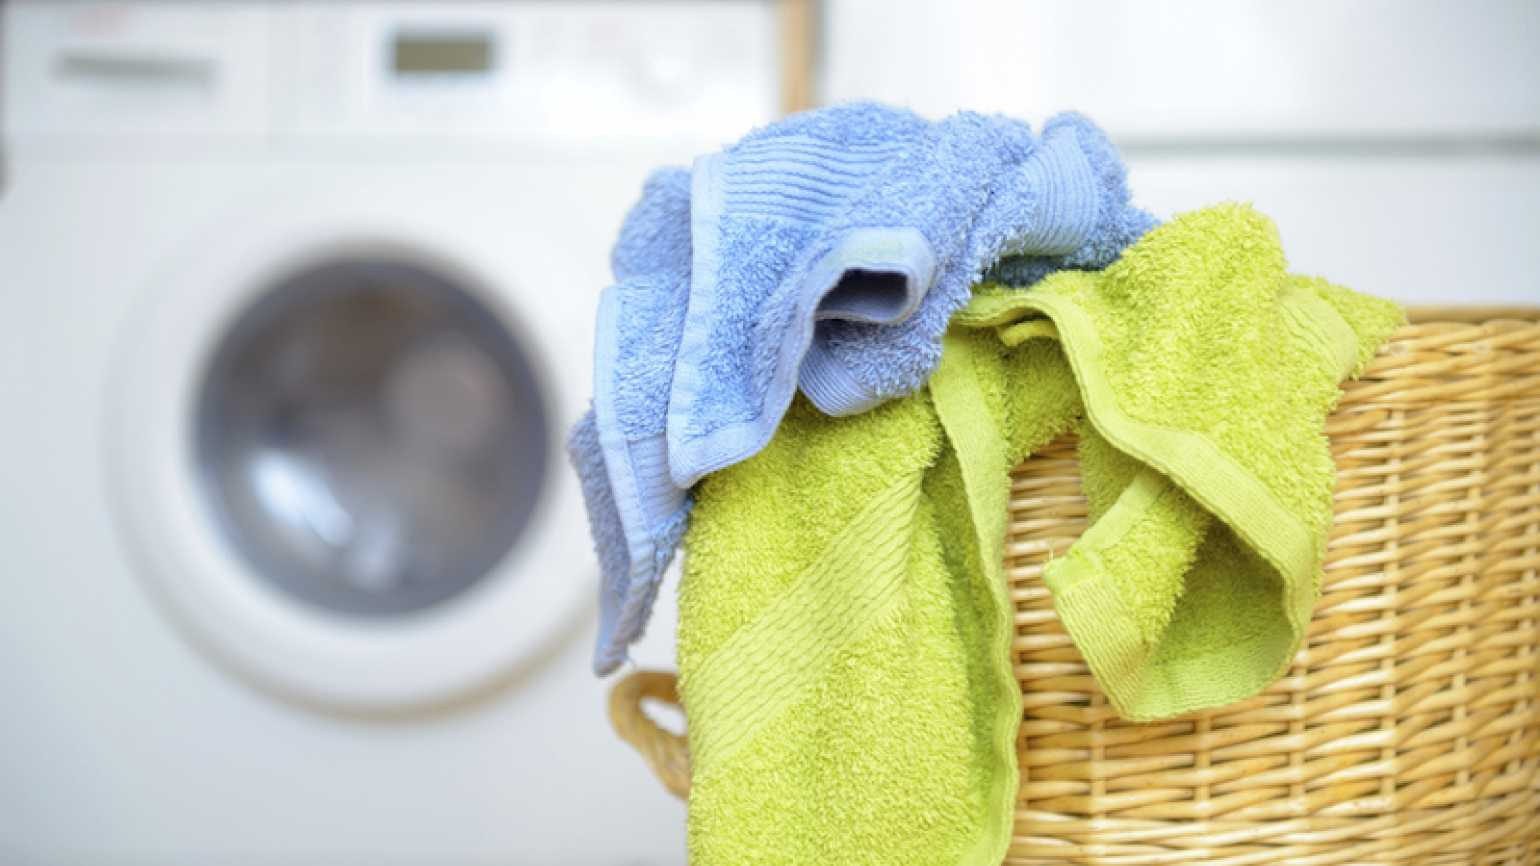 A laundry basket. Photo by humonia, Thinkstock.